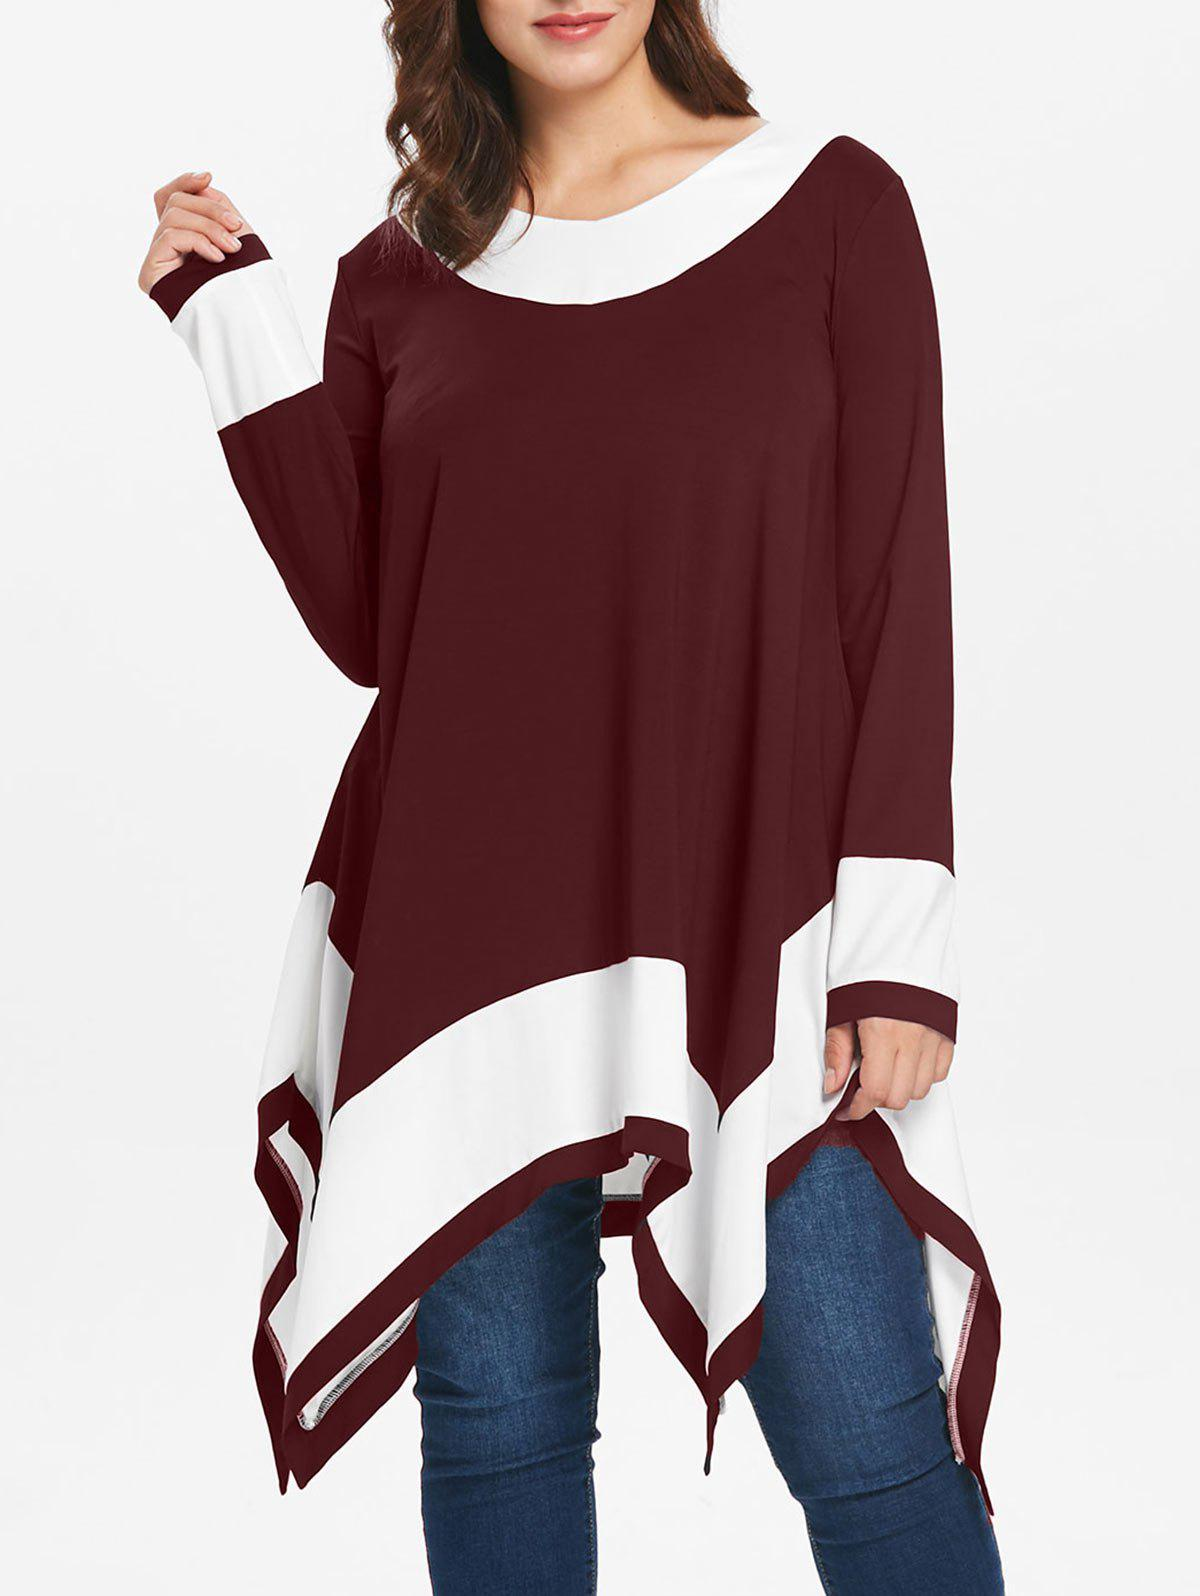 Sale Plus Size Long Sleeve Handkerchief Tunic Top